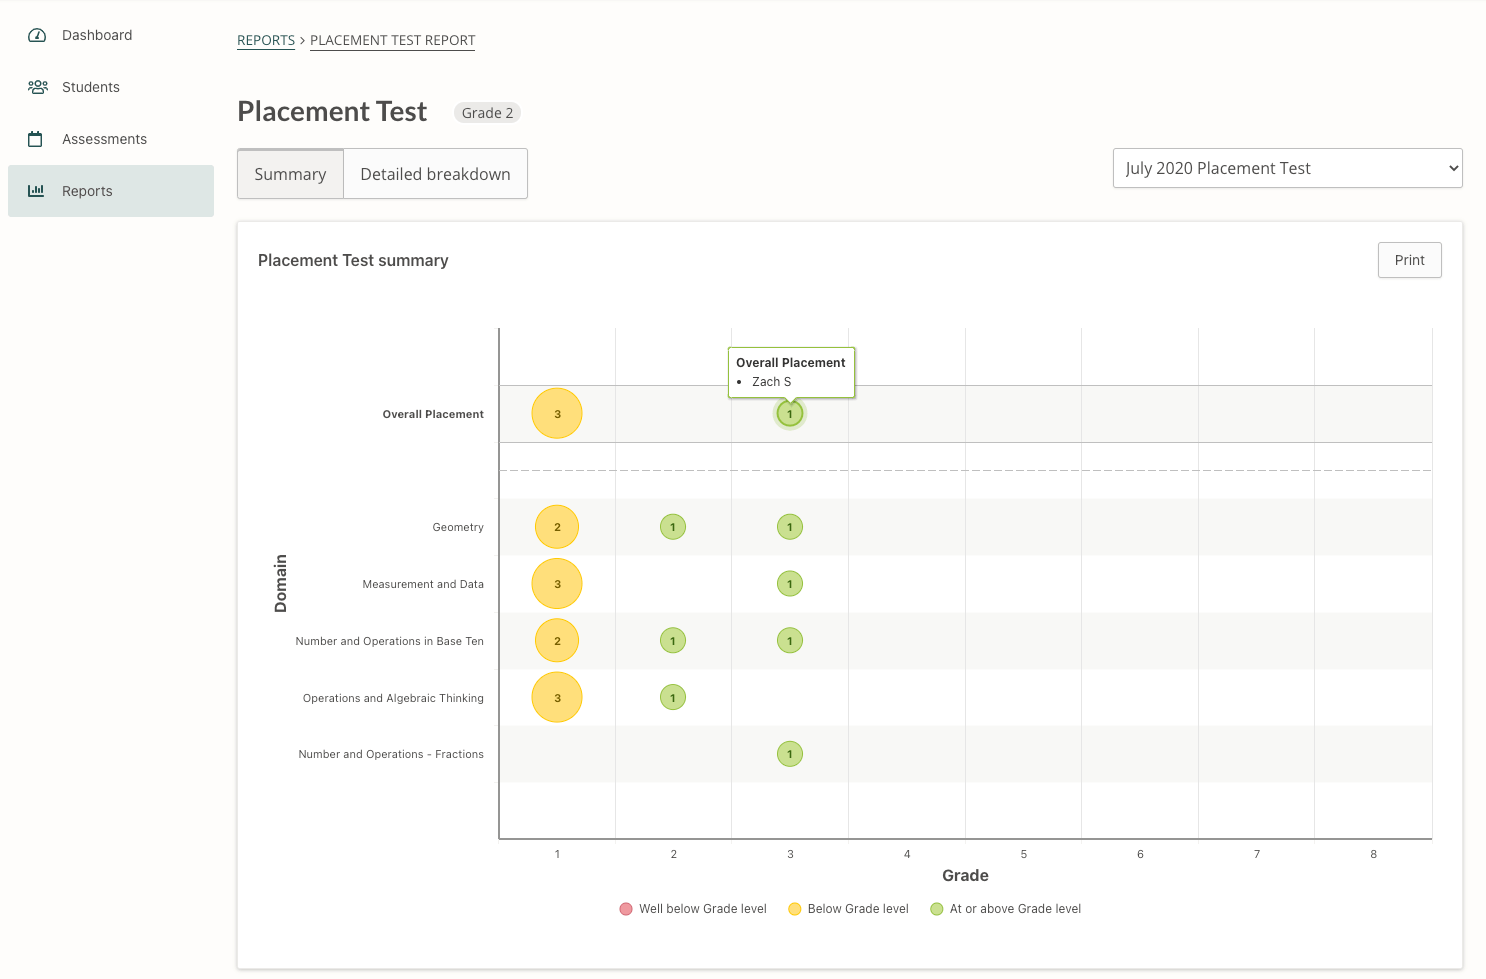 Screenshot of the Placement Test report in the Prodigy teacher dashboard.